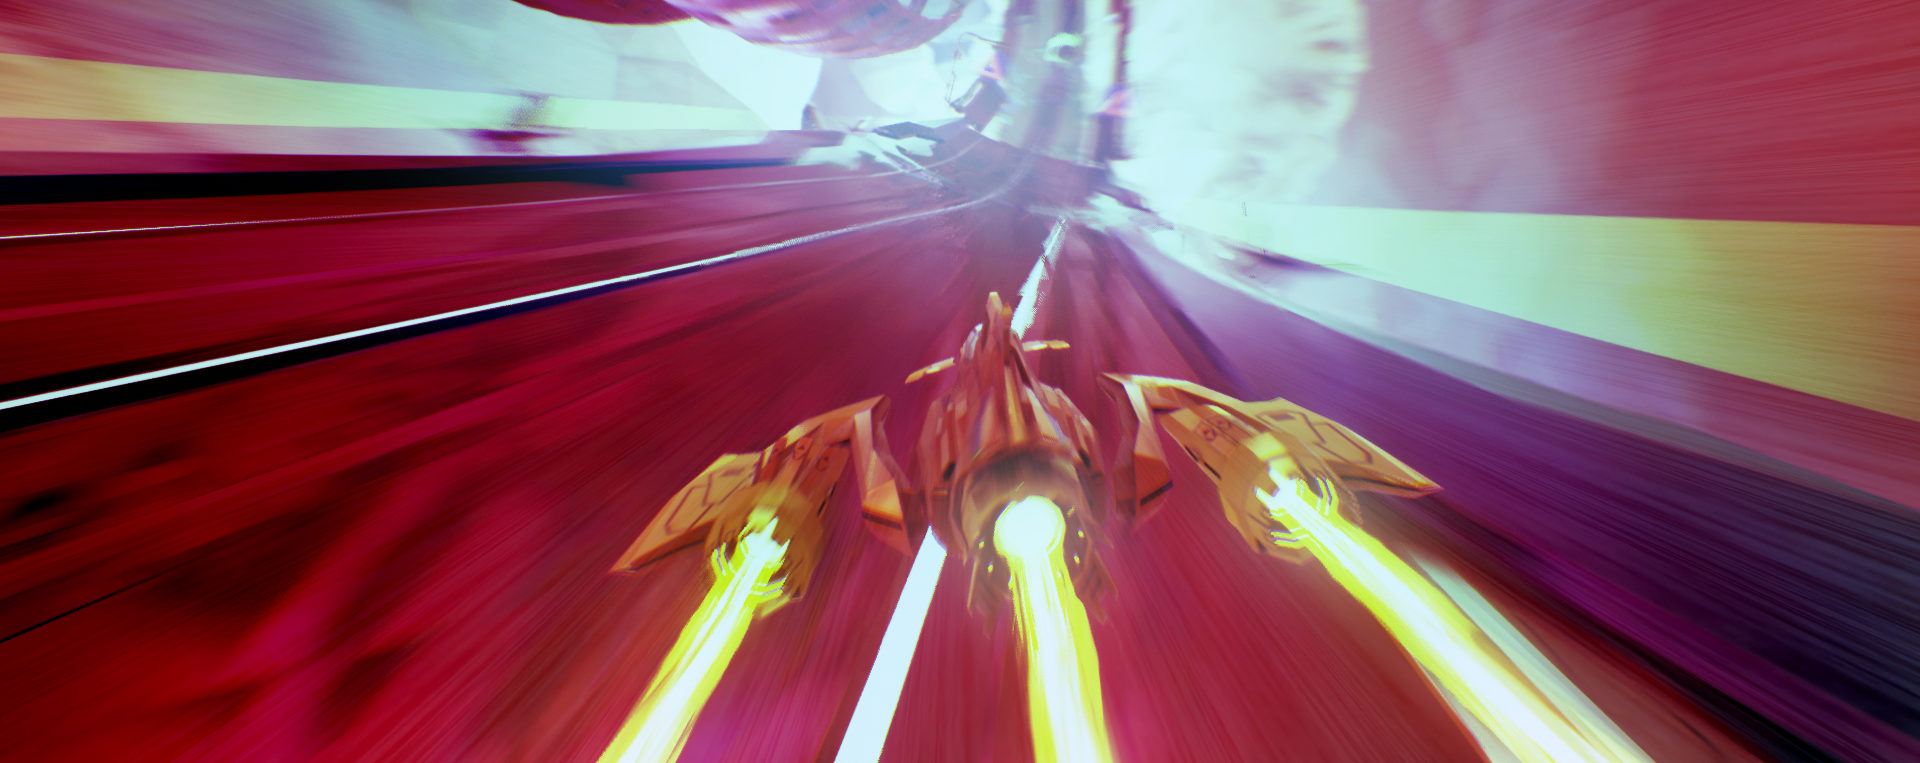 34BigThings Categorically Denies Digital Foundry's Redout Xbox One X Analysis, Threatening Legal Action